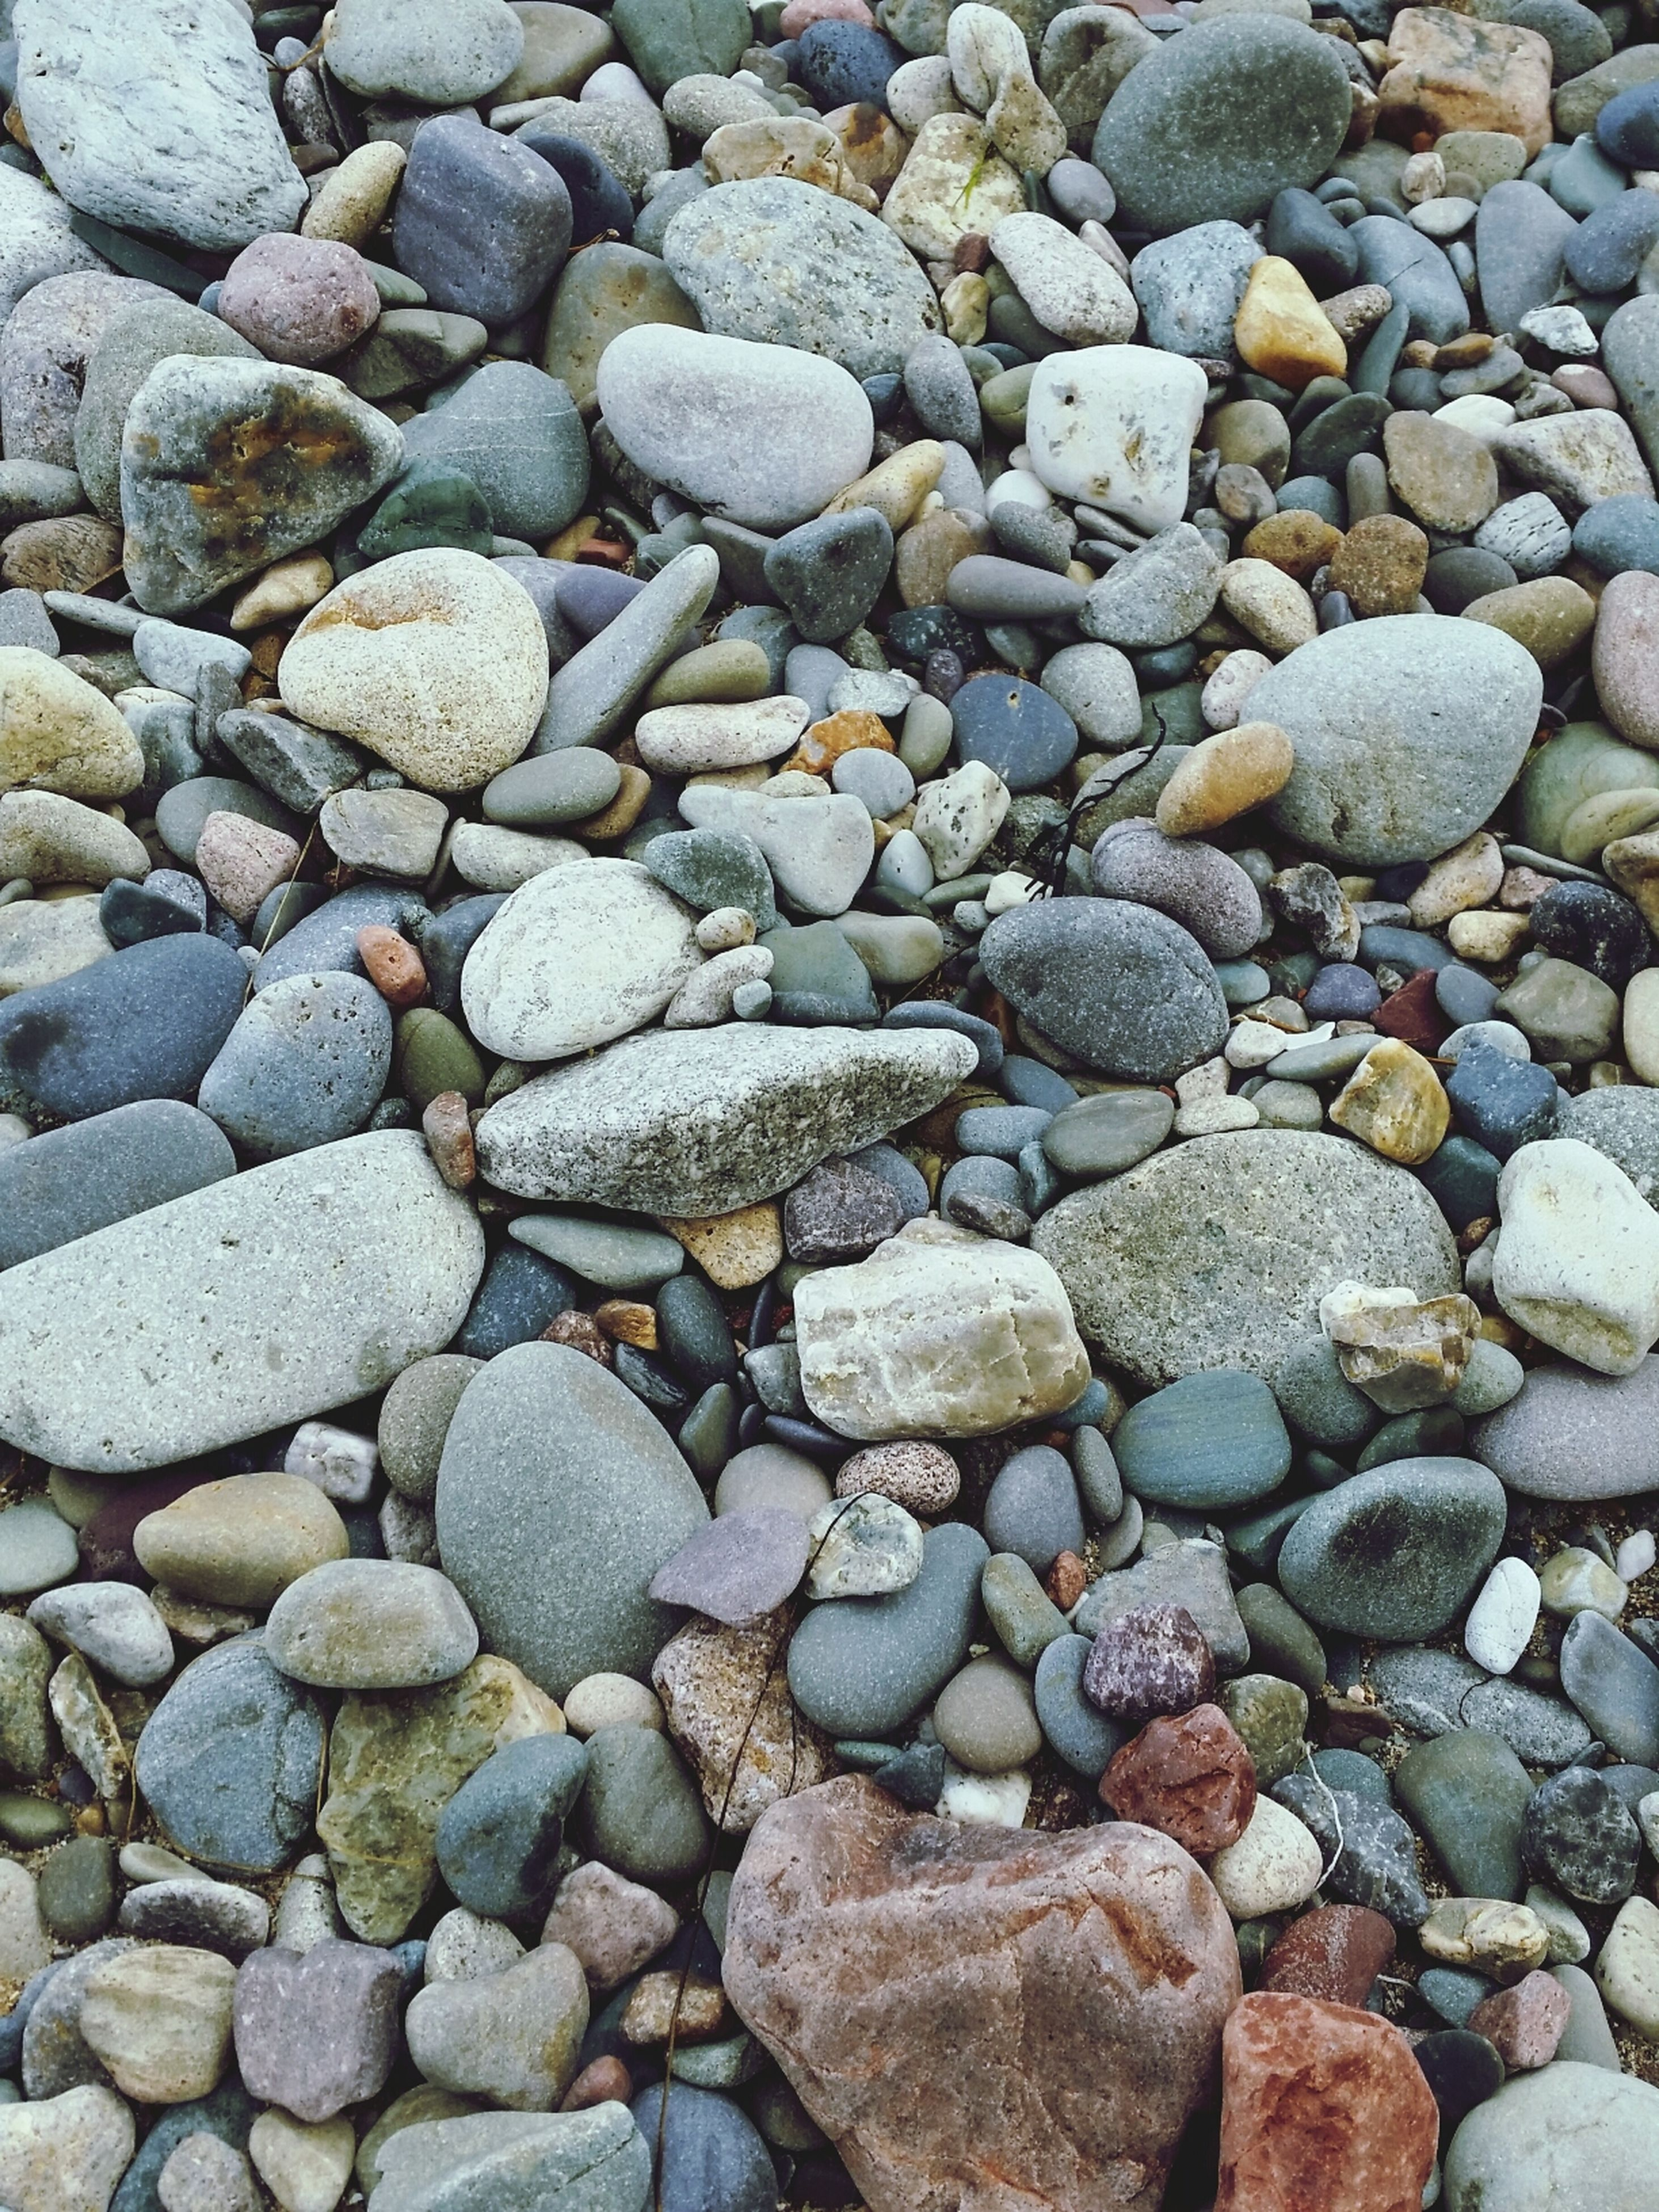 stone - object, pebble, rock - object, abundance, stone, textured, backgrounds, full frame, large group of objects, high angle view, nature, rock, day, outdoors, no people, rough, beach, tranquility, close-up, pattern